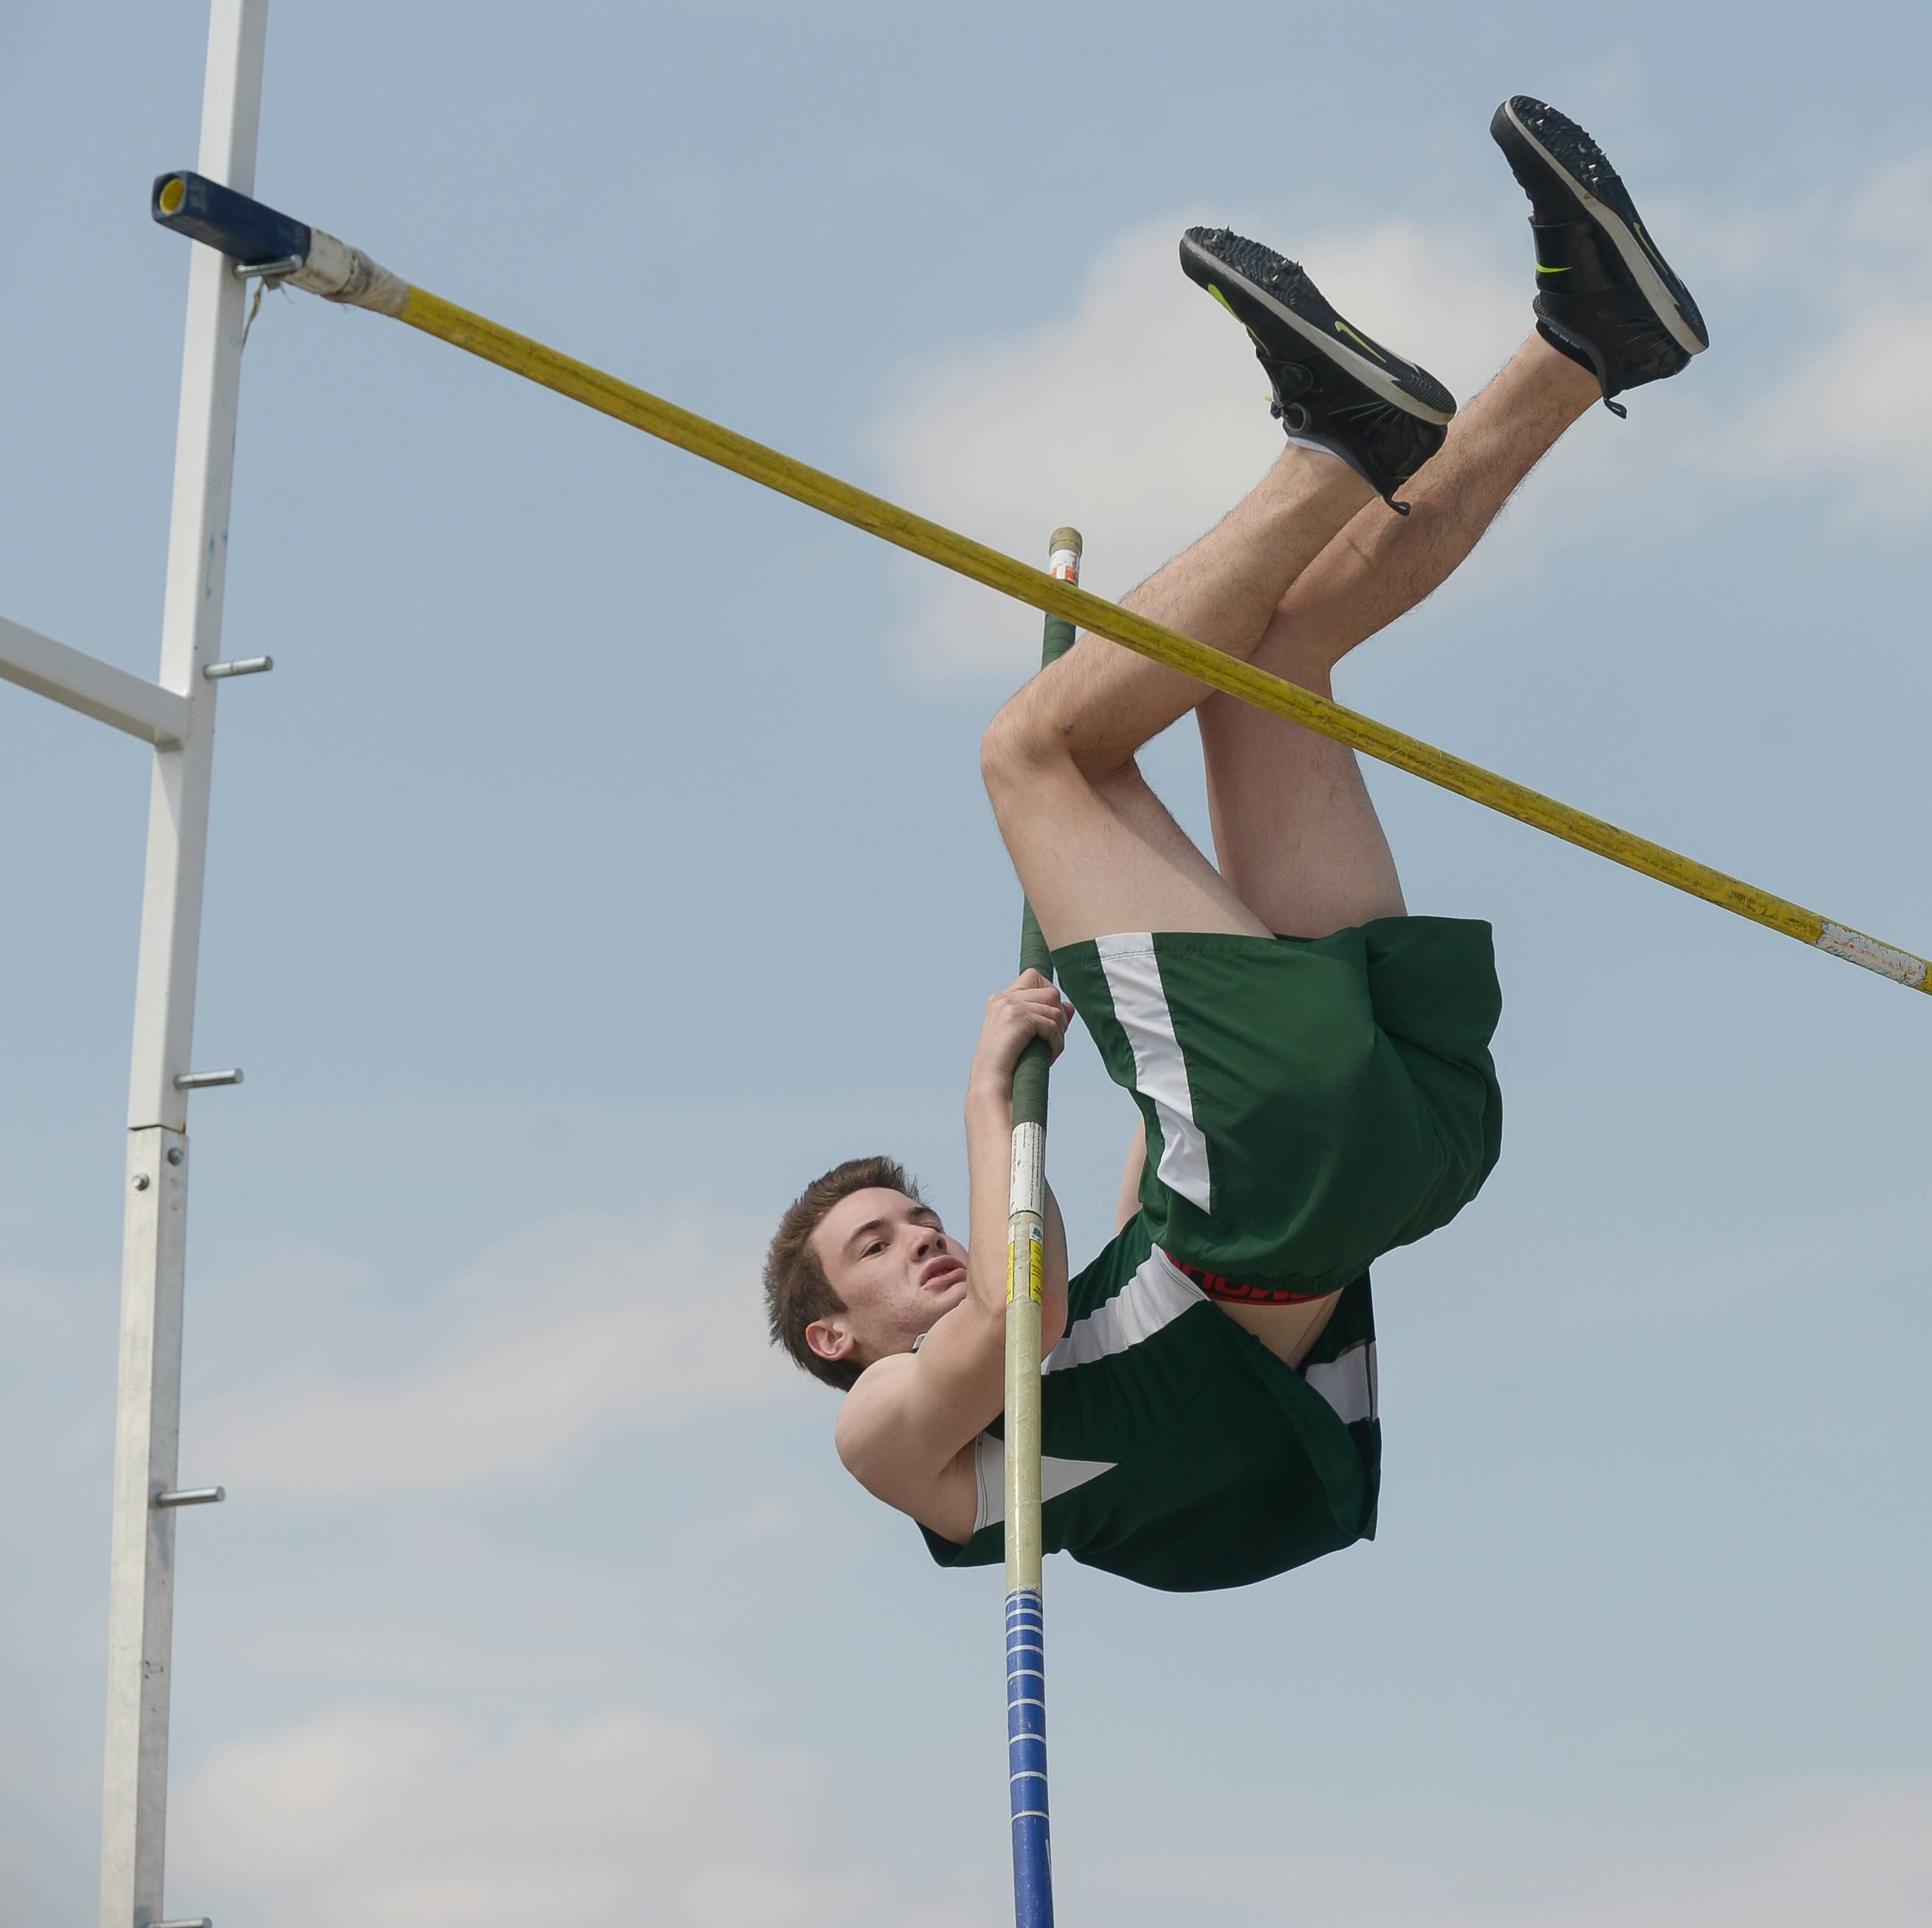 Glenbard West's Josh Cohn competes in the pole vault during Wheaton North's 29th Annual Best 4 Invite.